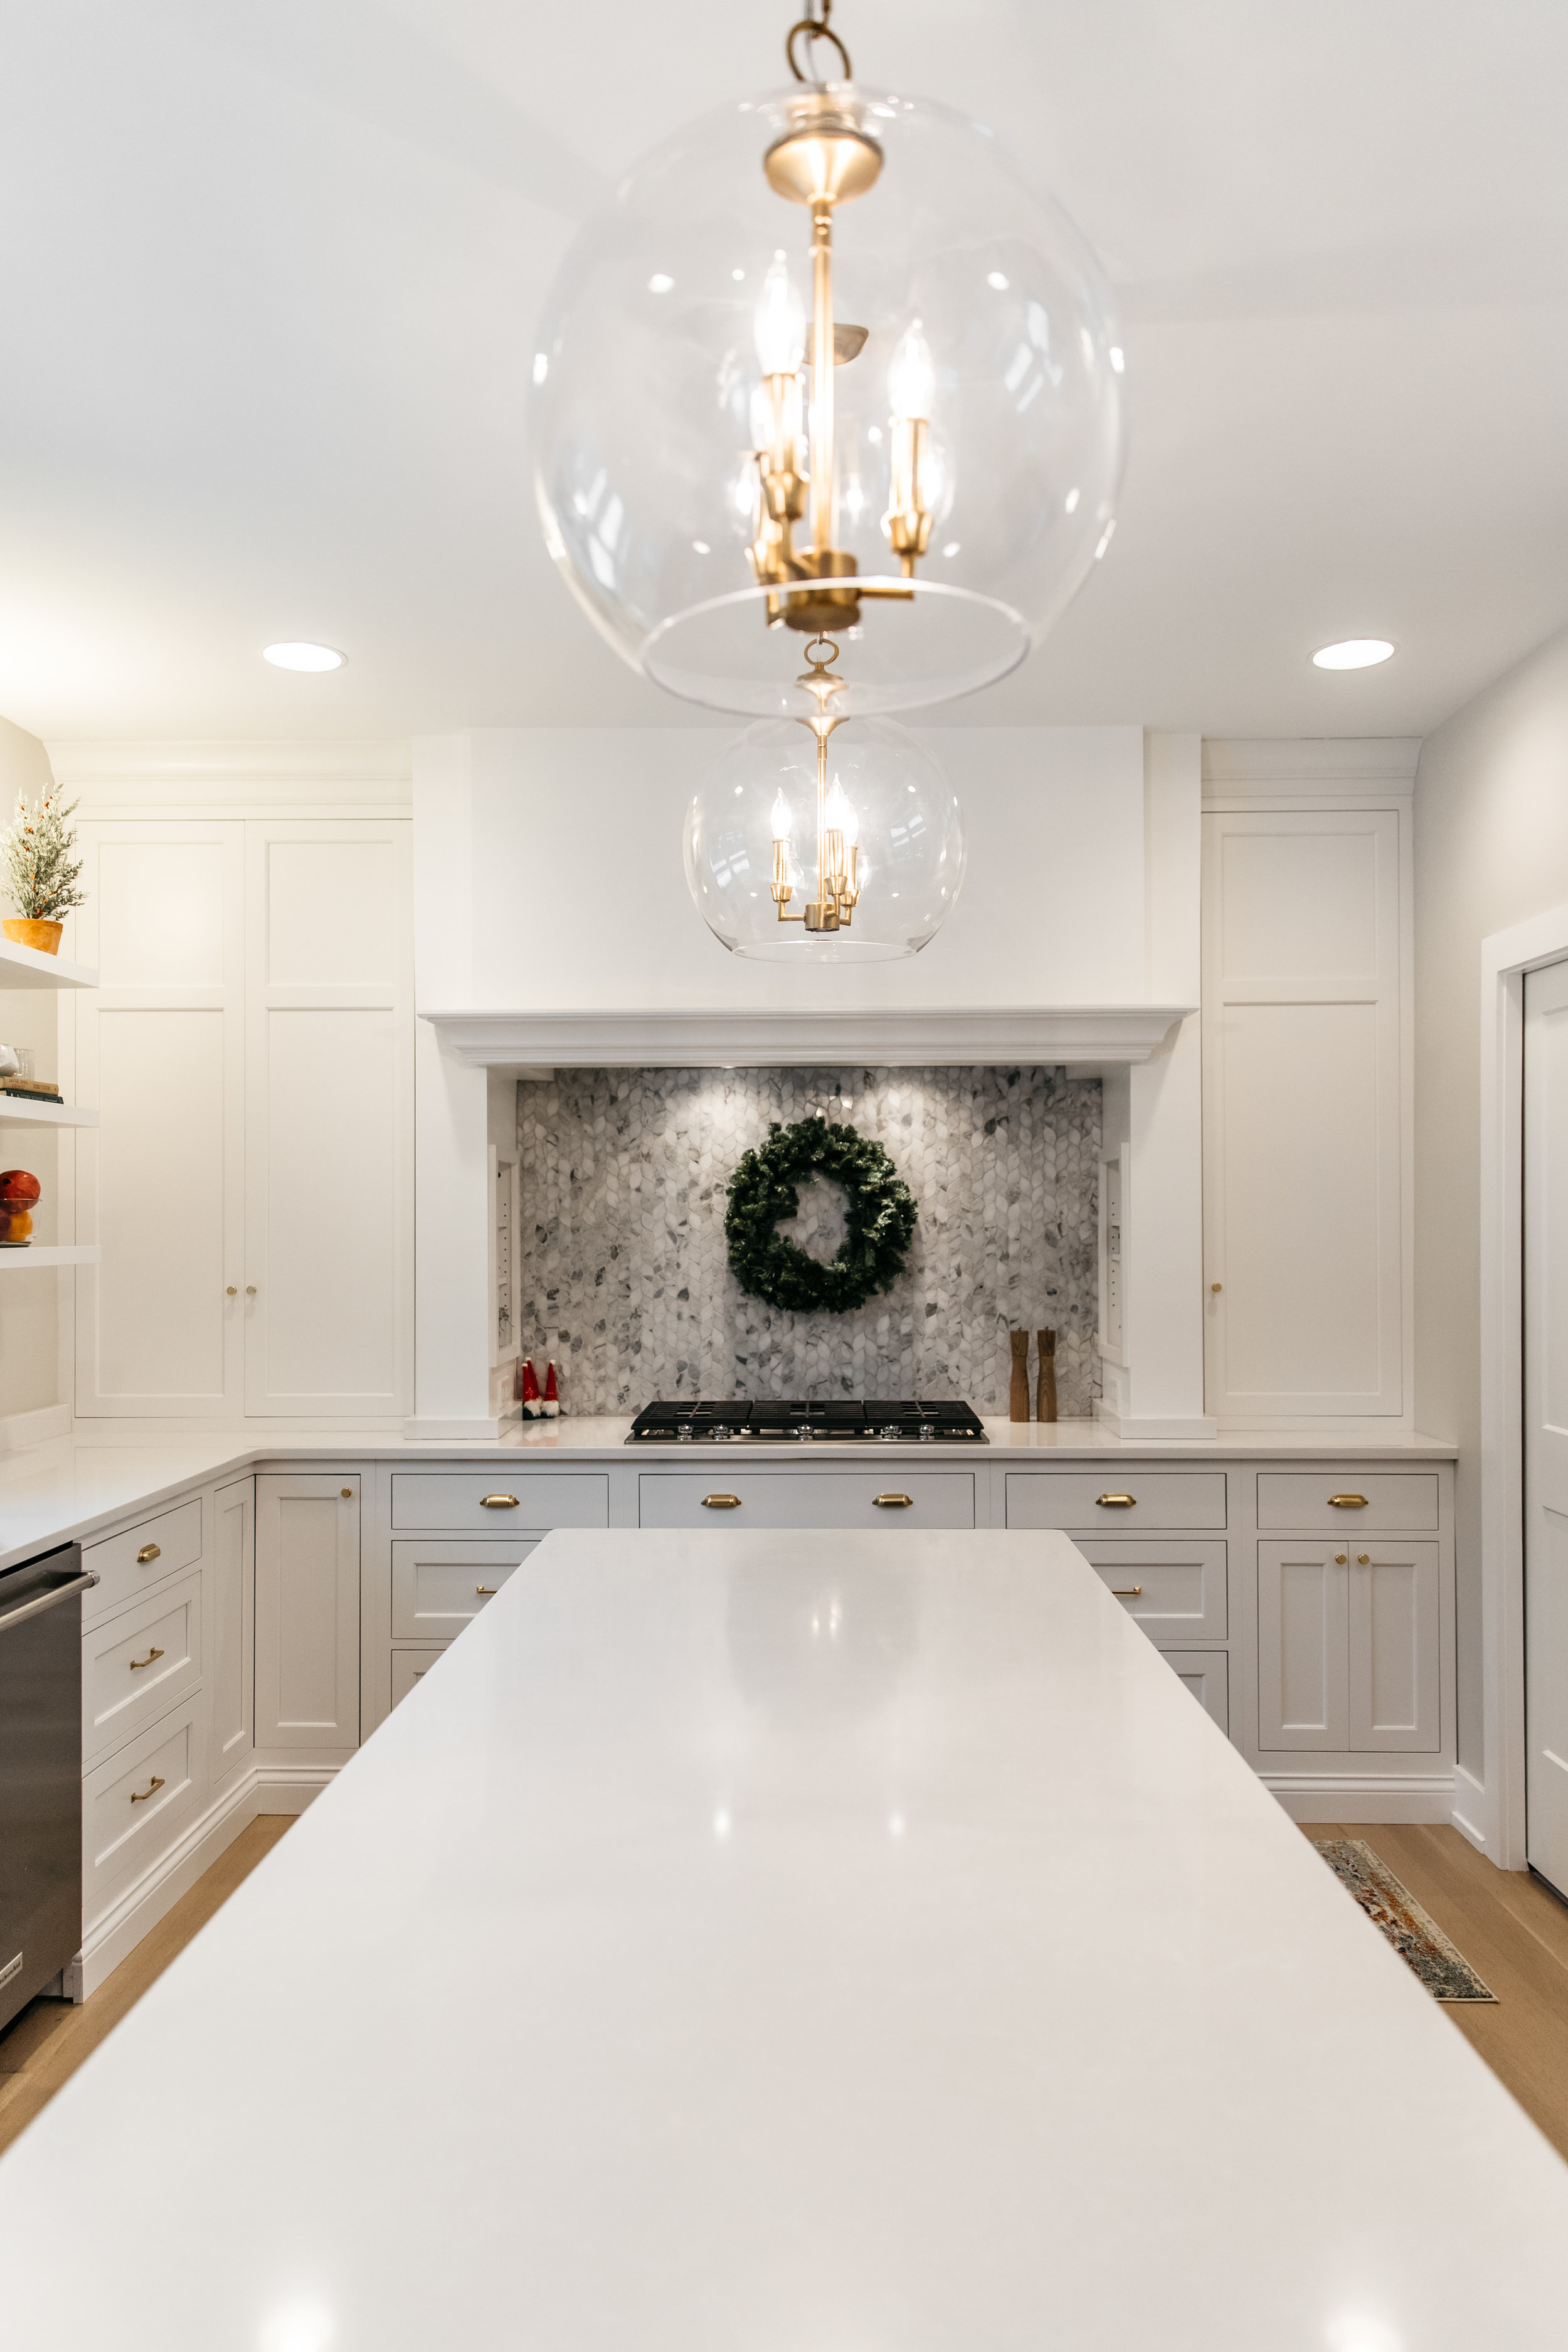 White kitchen with wreath and other holiday decor